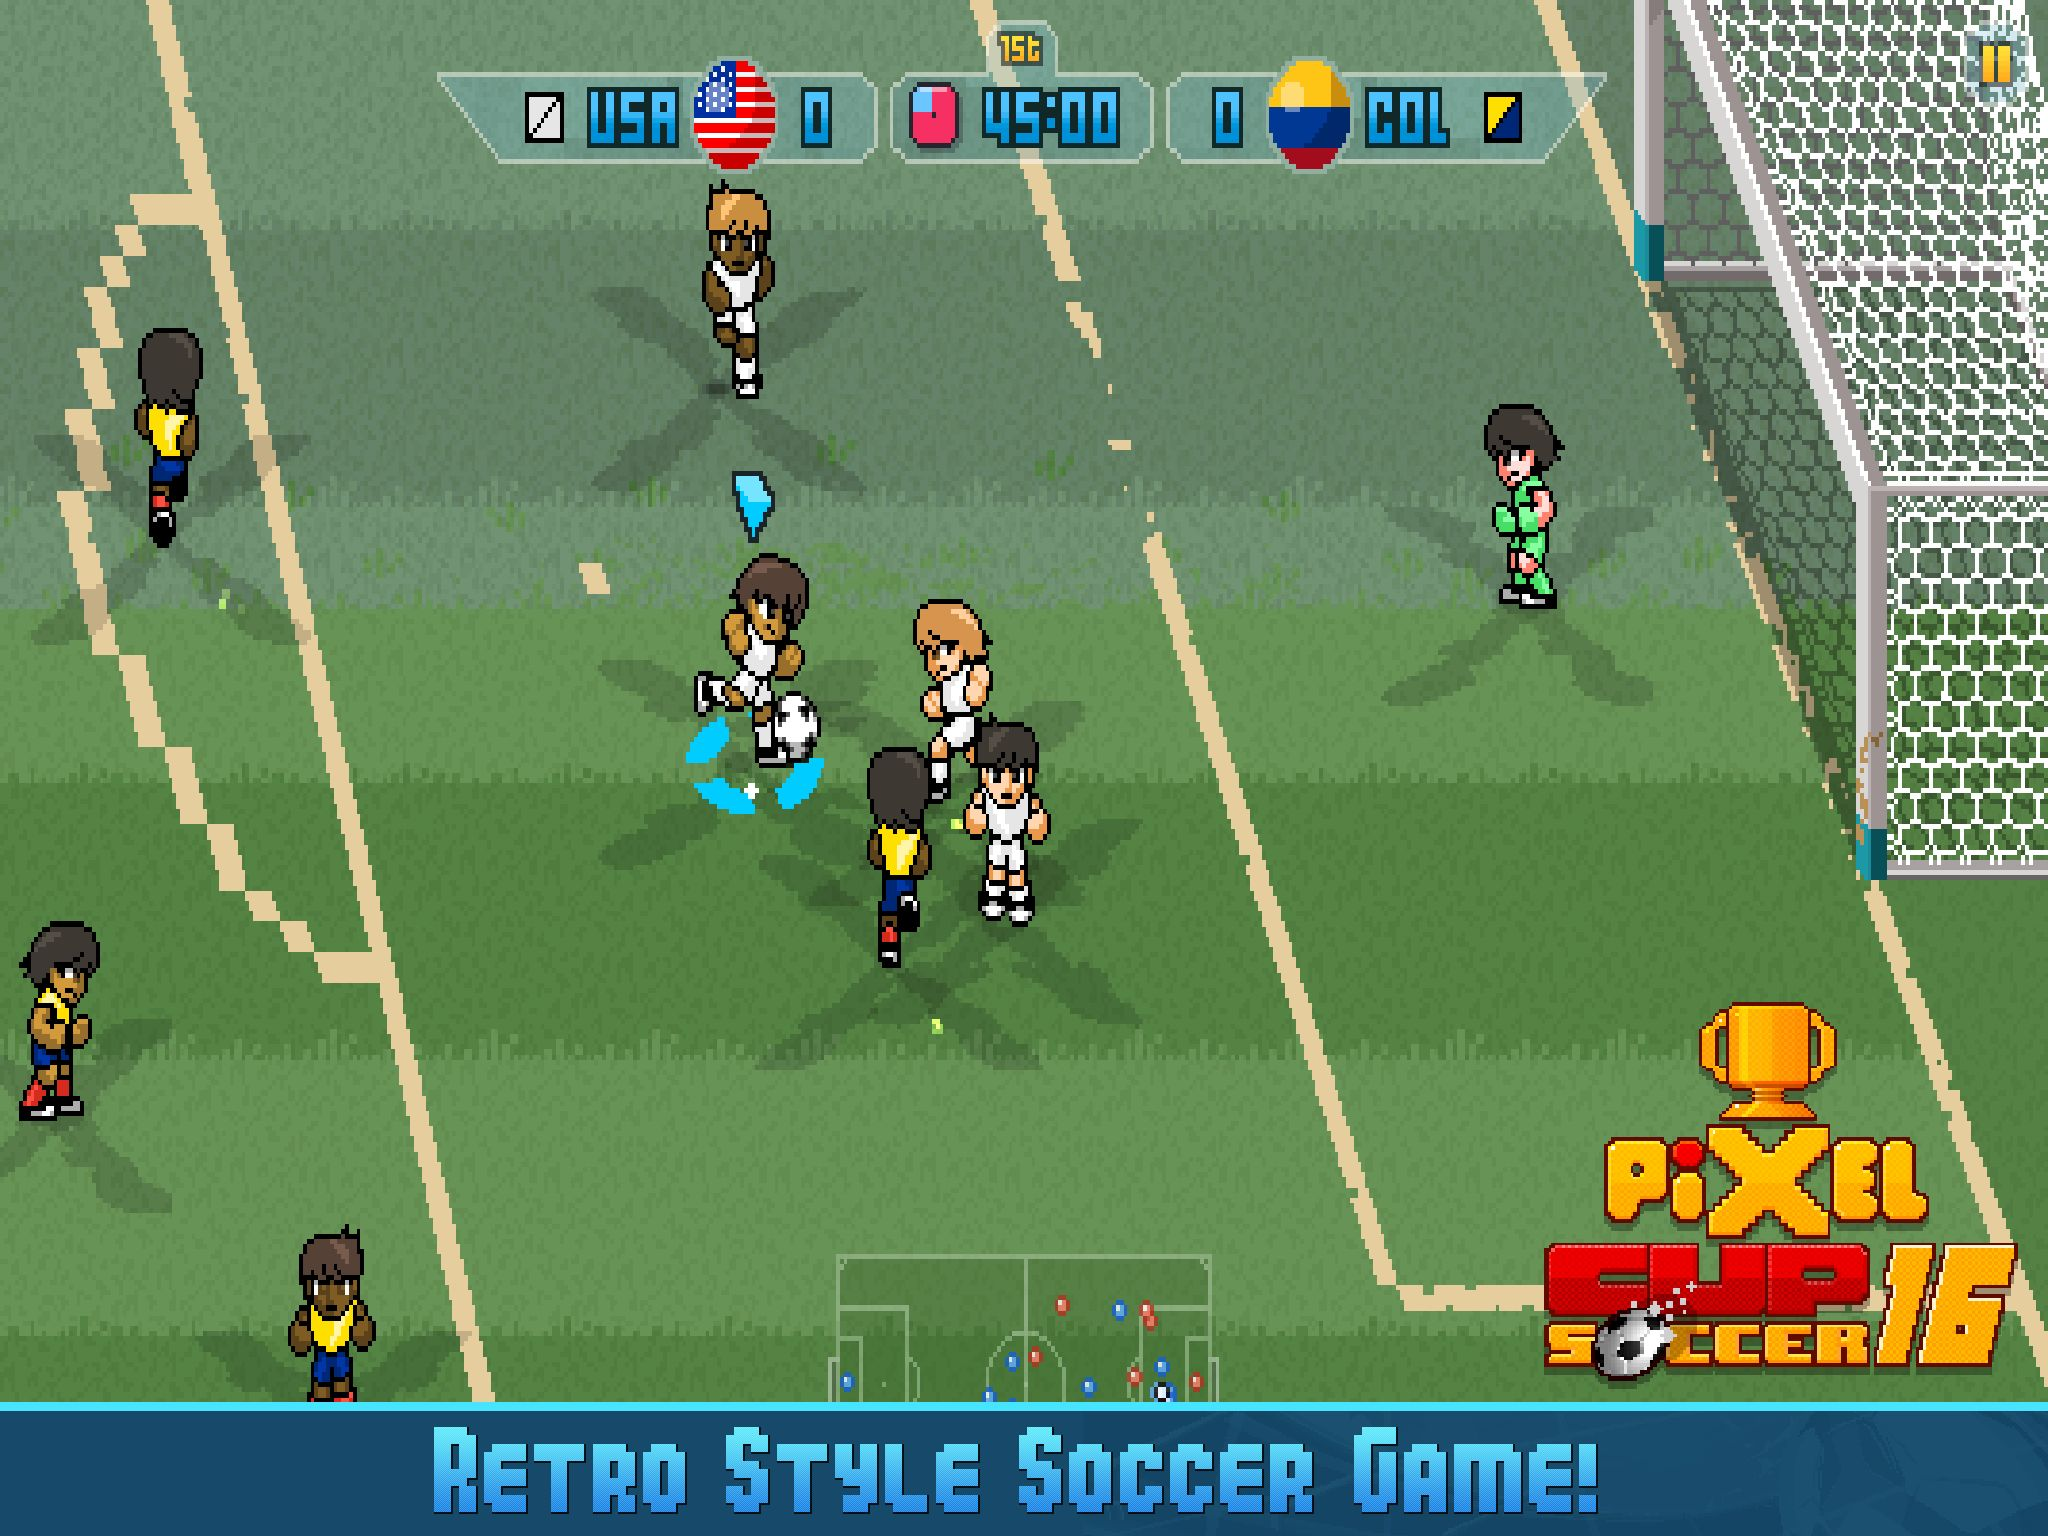 pixel-cup-soccer-iphone-ipad-mobile-game-retro